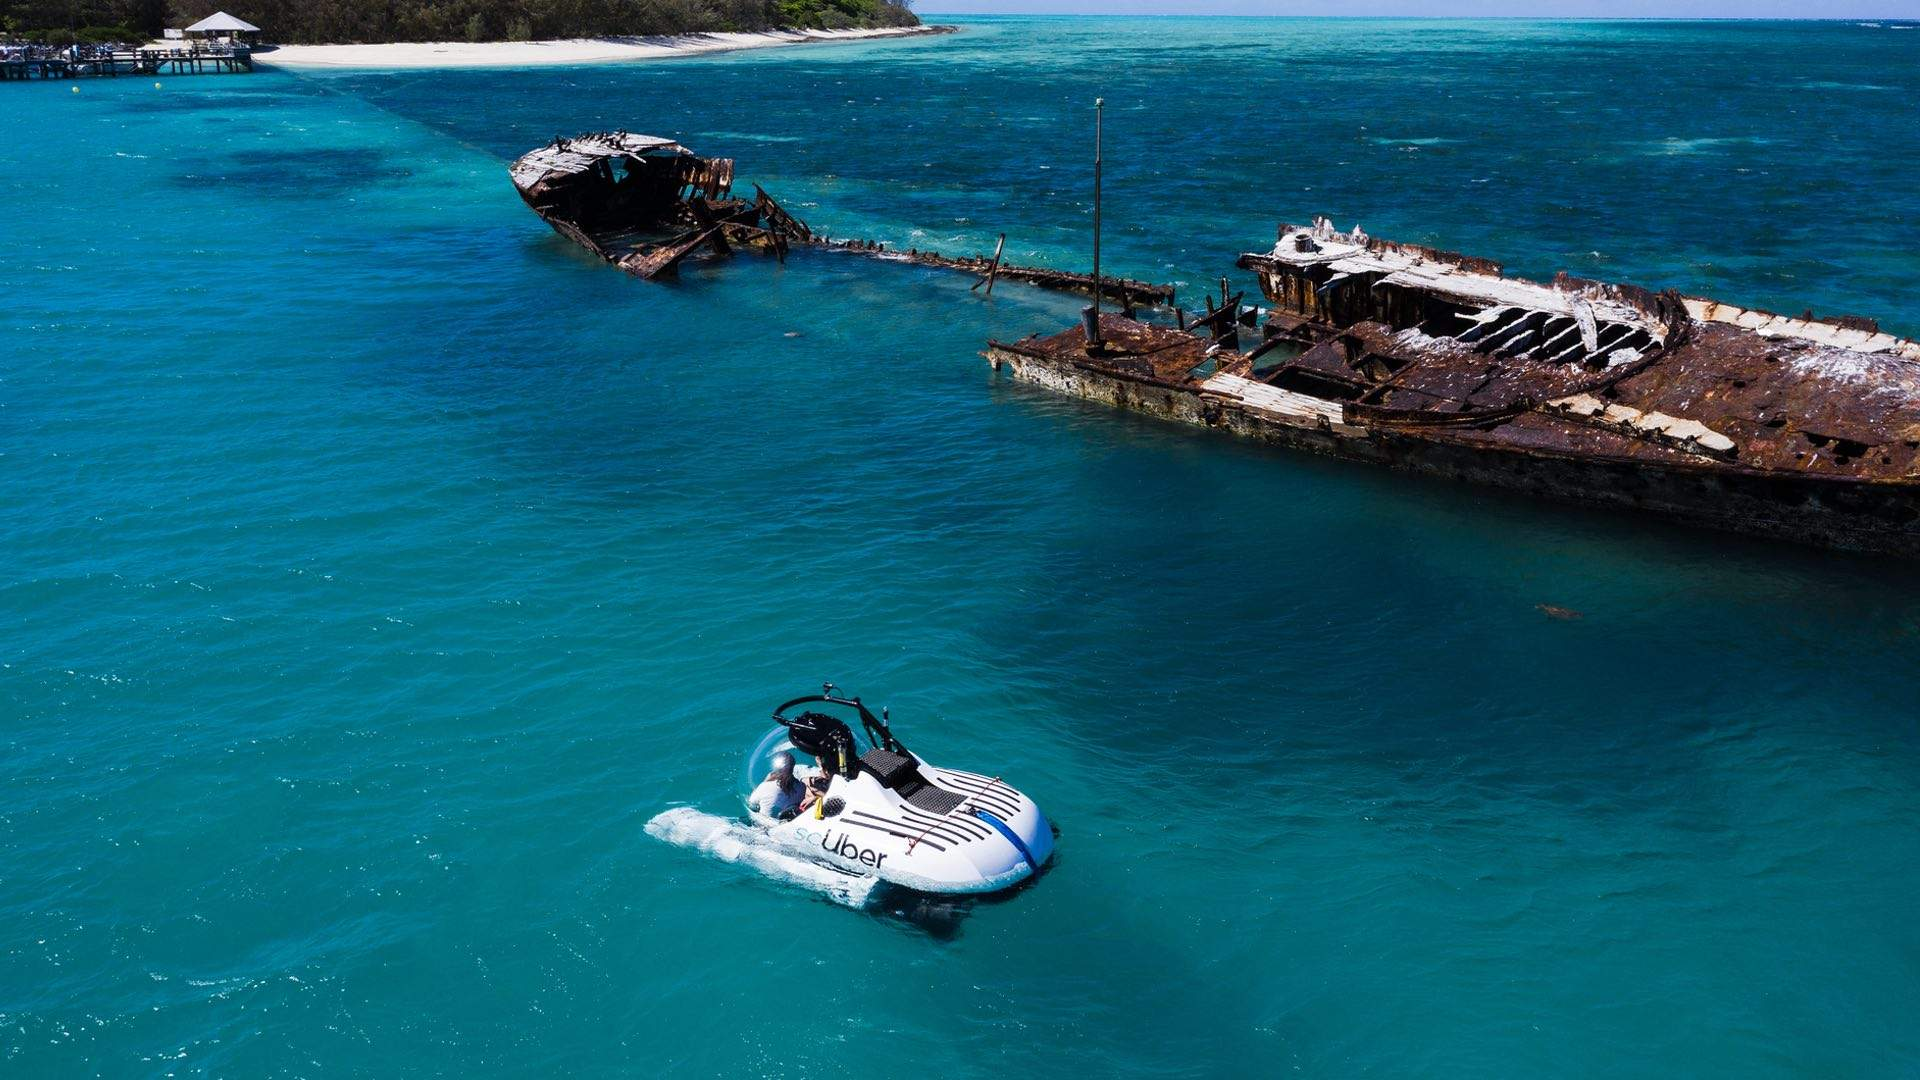 You Can Now Order an Uber Submarine to Explore the Depths of the Great Barrier Reef